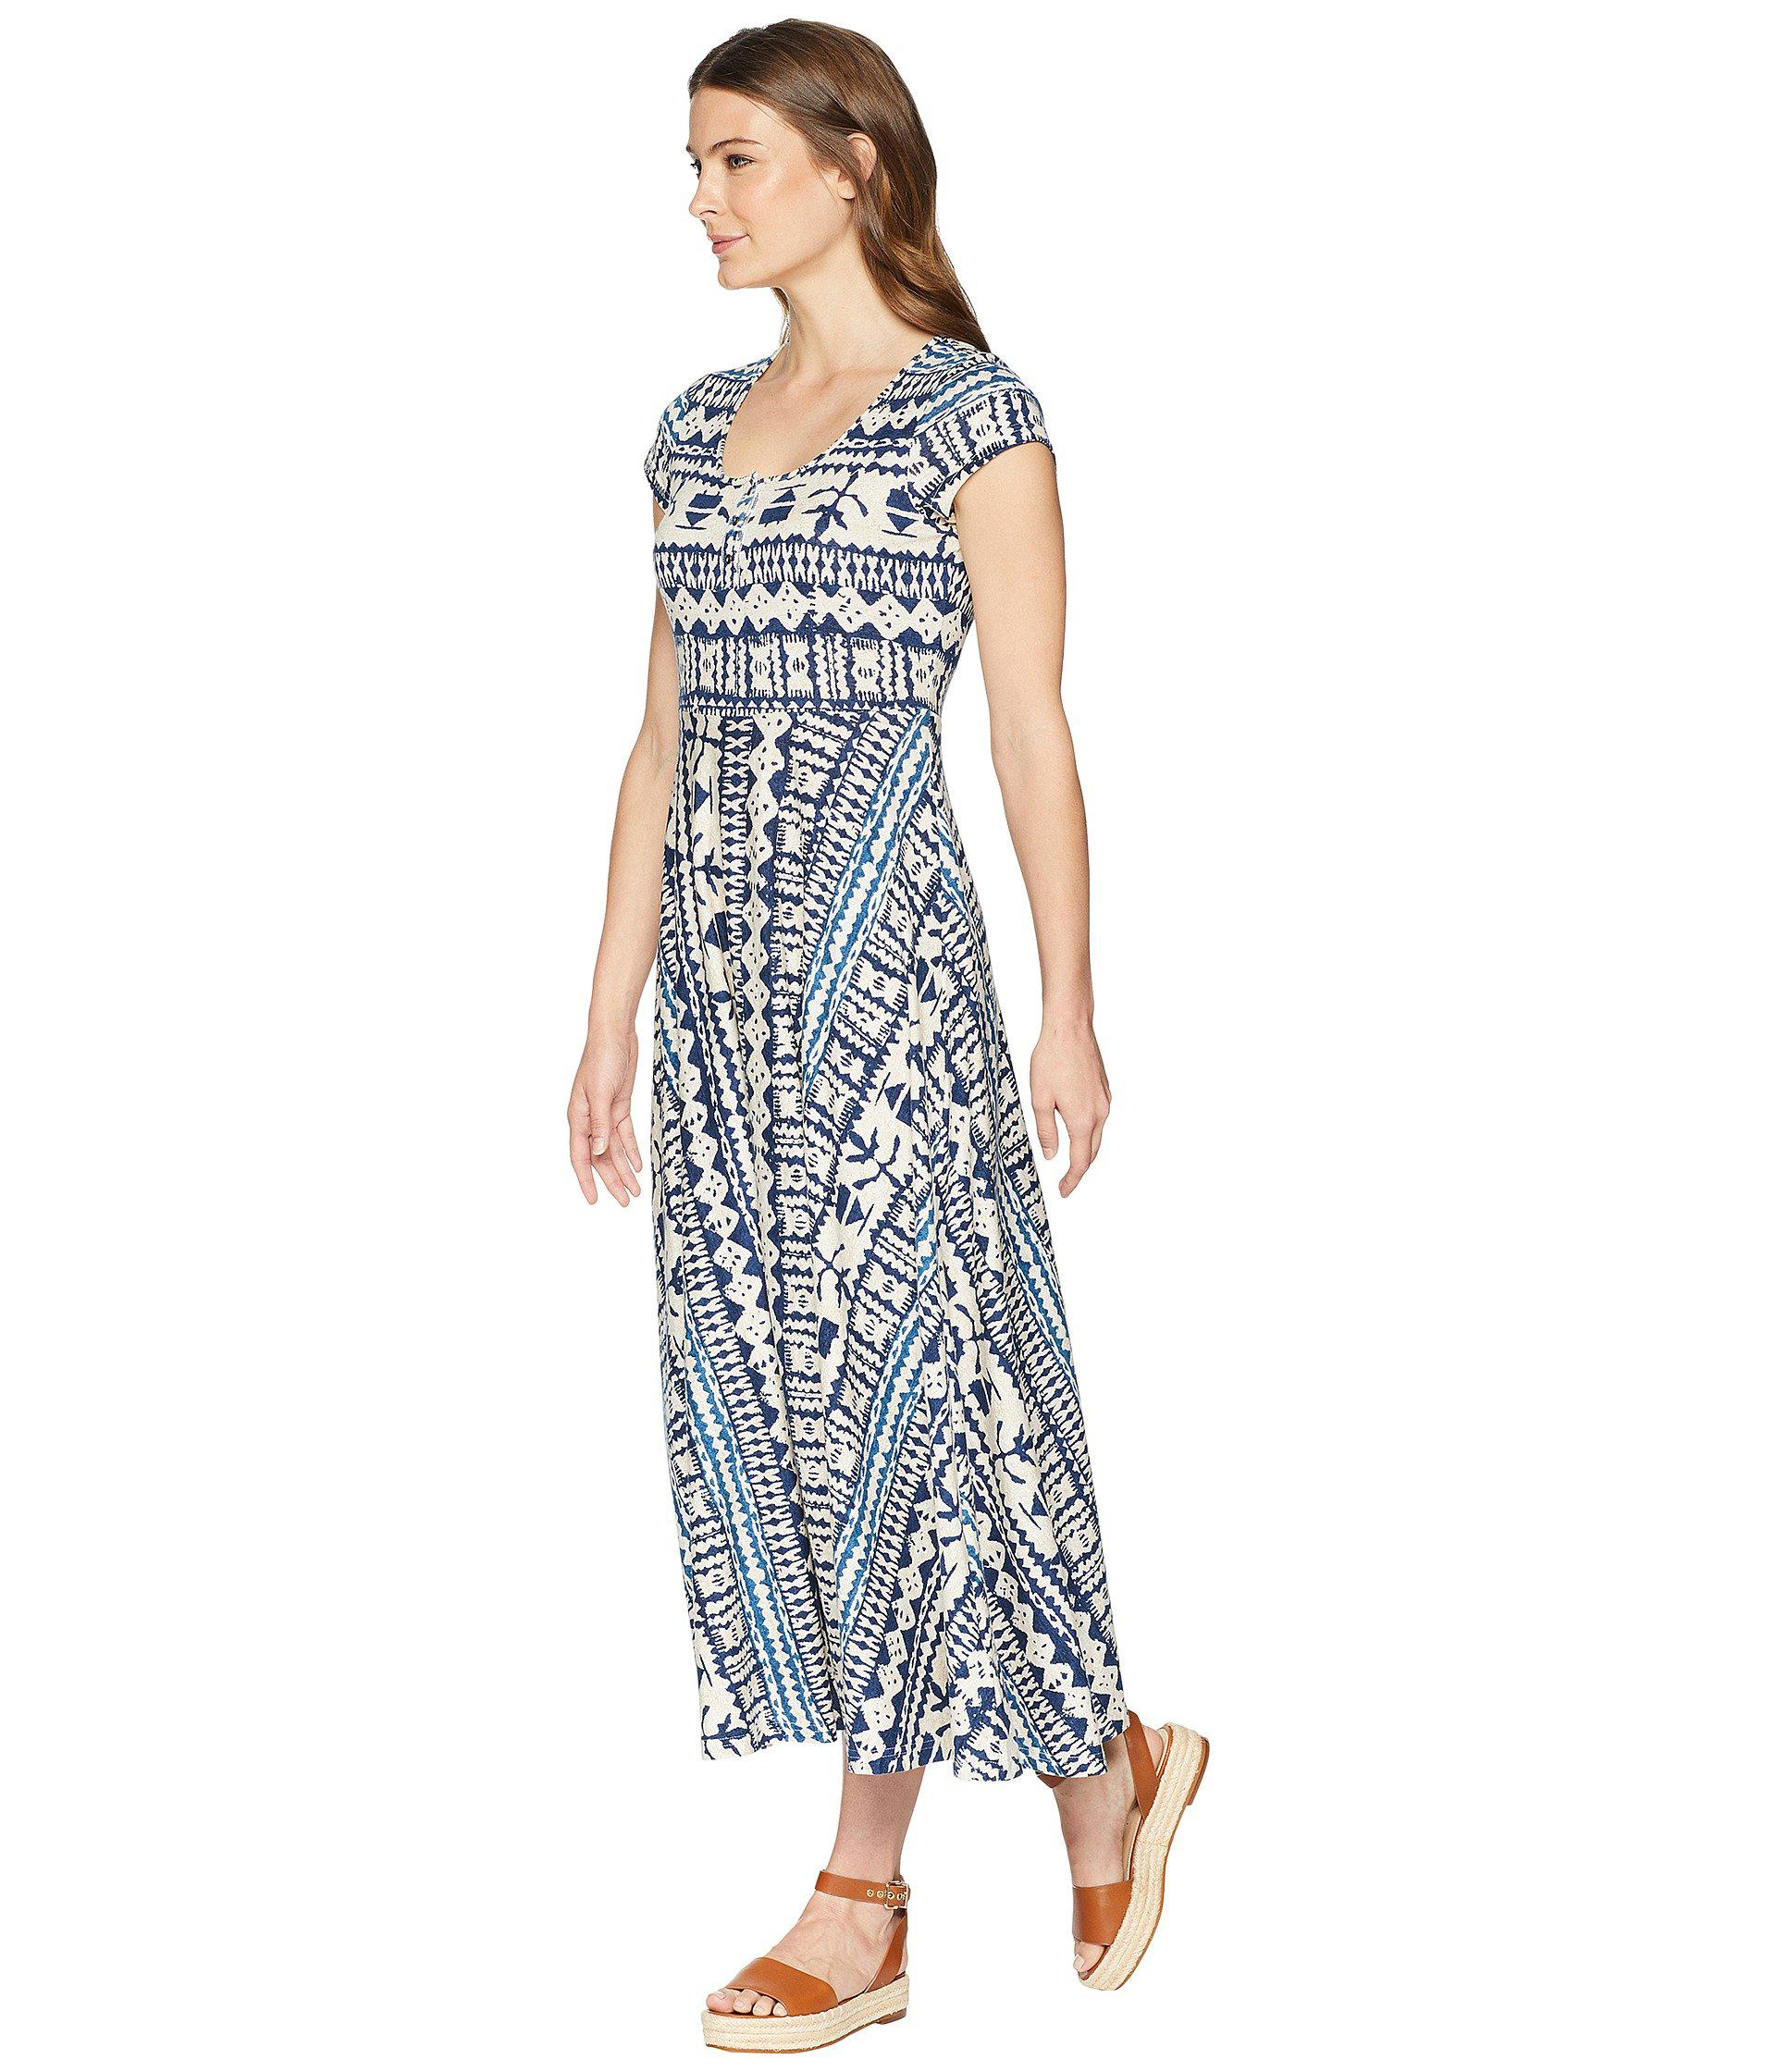 3cac693878f Lyst - Chaps Short Sleeve Batik Cotton Jersey Maxi Dress in Blue - Save 11%